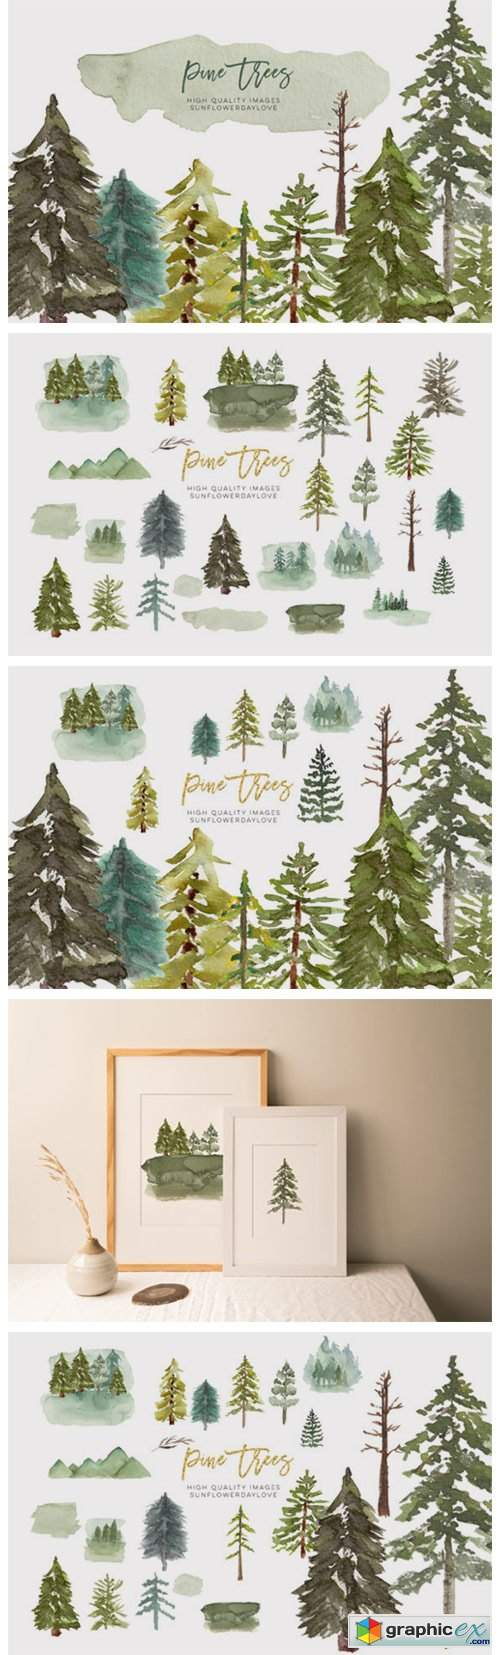 Watercolor Pine Tree Clipart, Evergreen